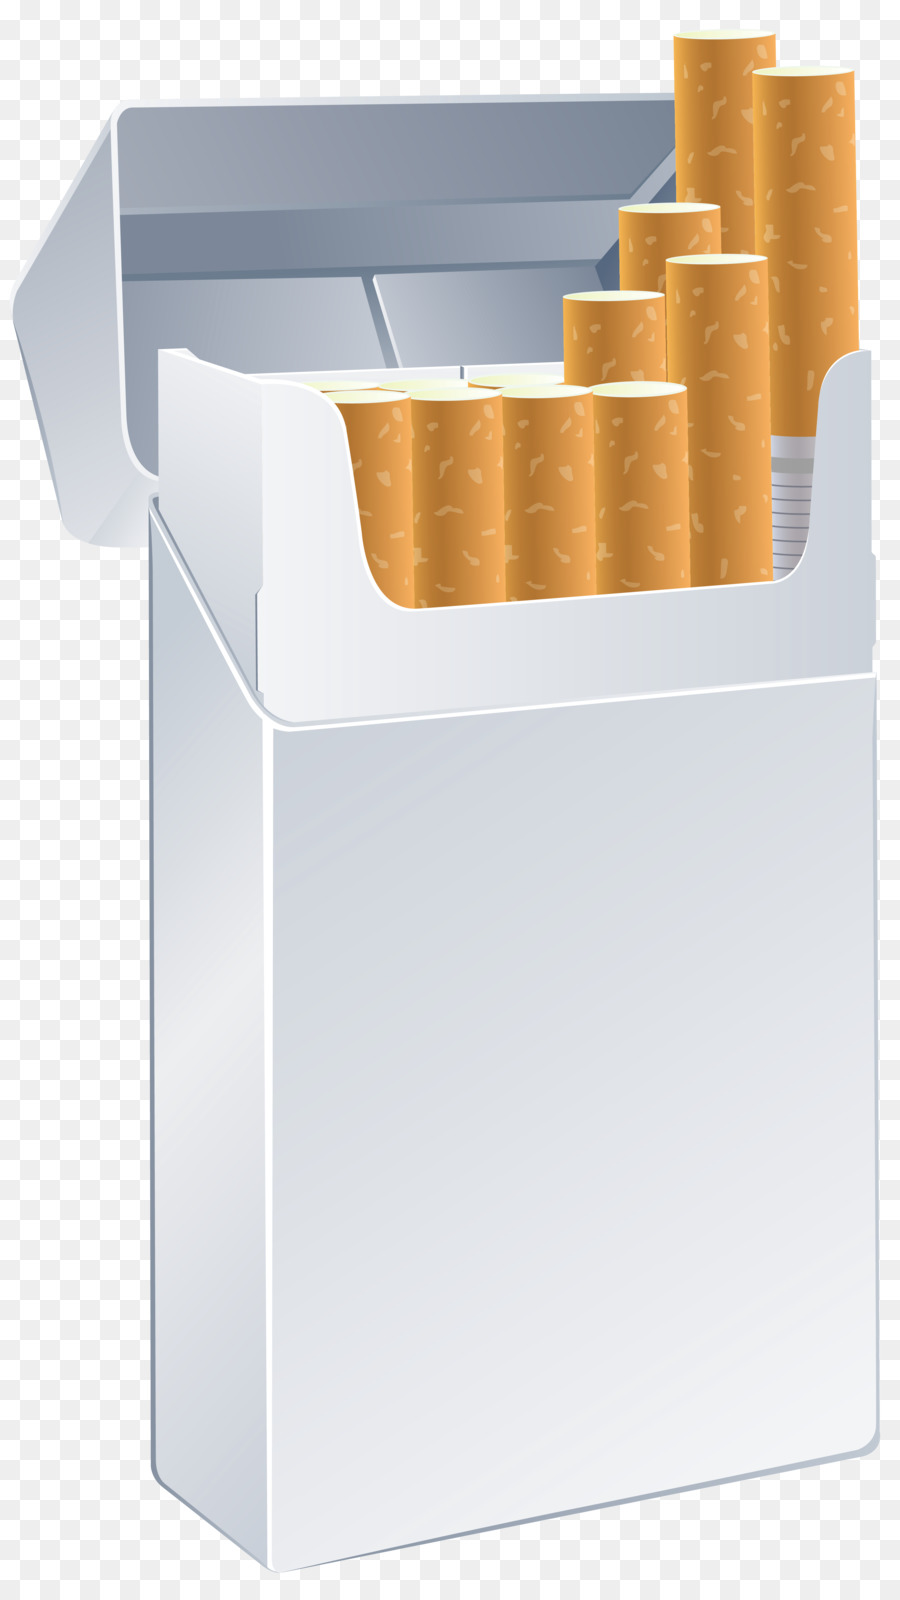 Cigarette Cartoon png download.